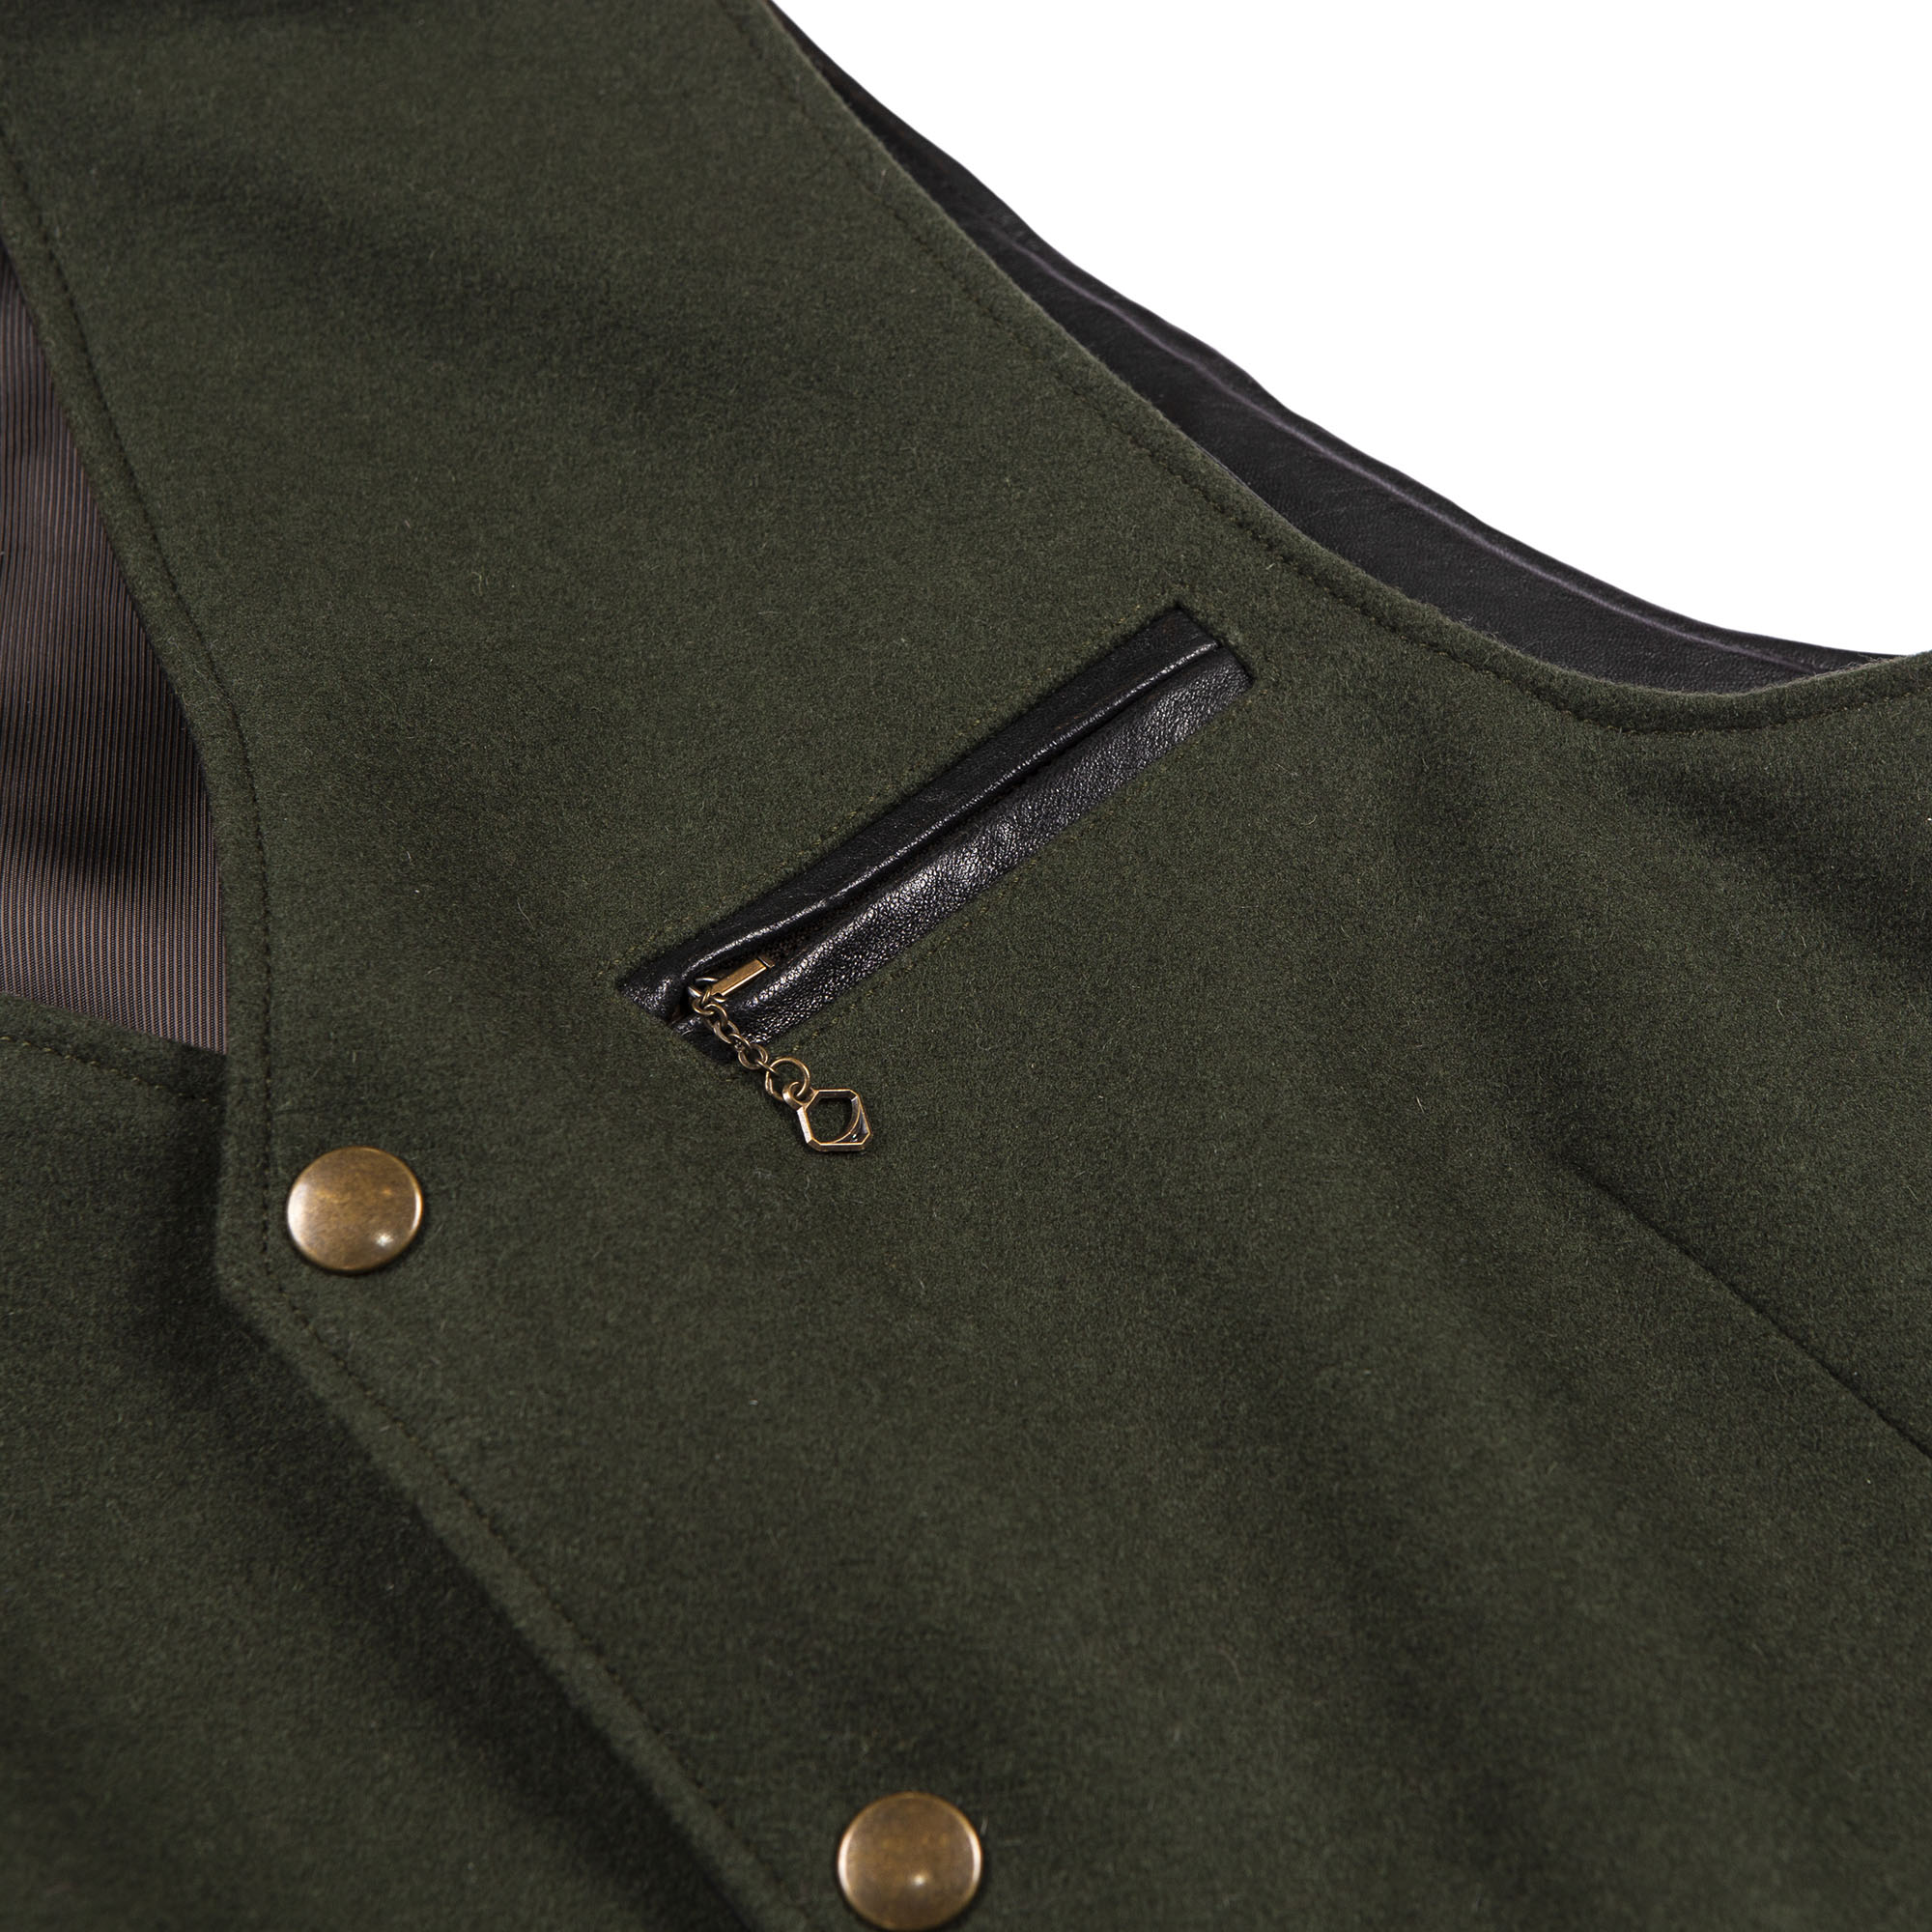 shangri-la-heritage-mandriano-forest-green-wool-vest-still-life-front-chest-pocket